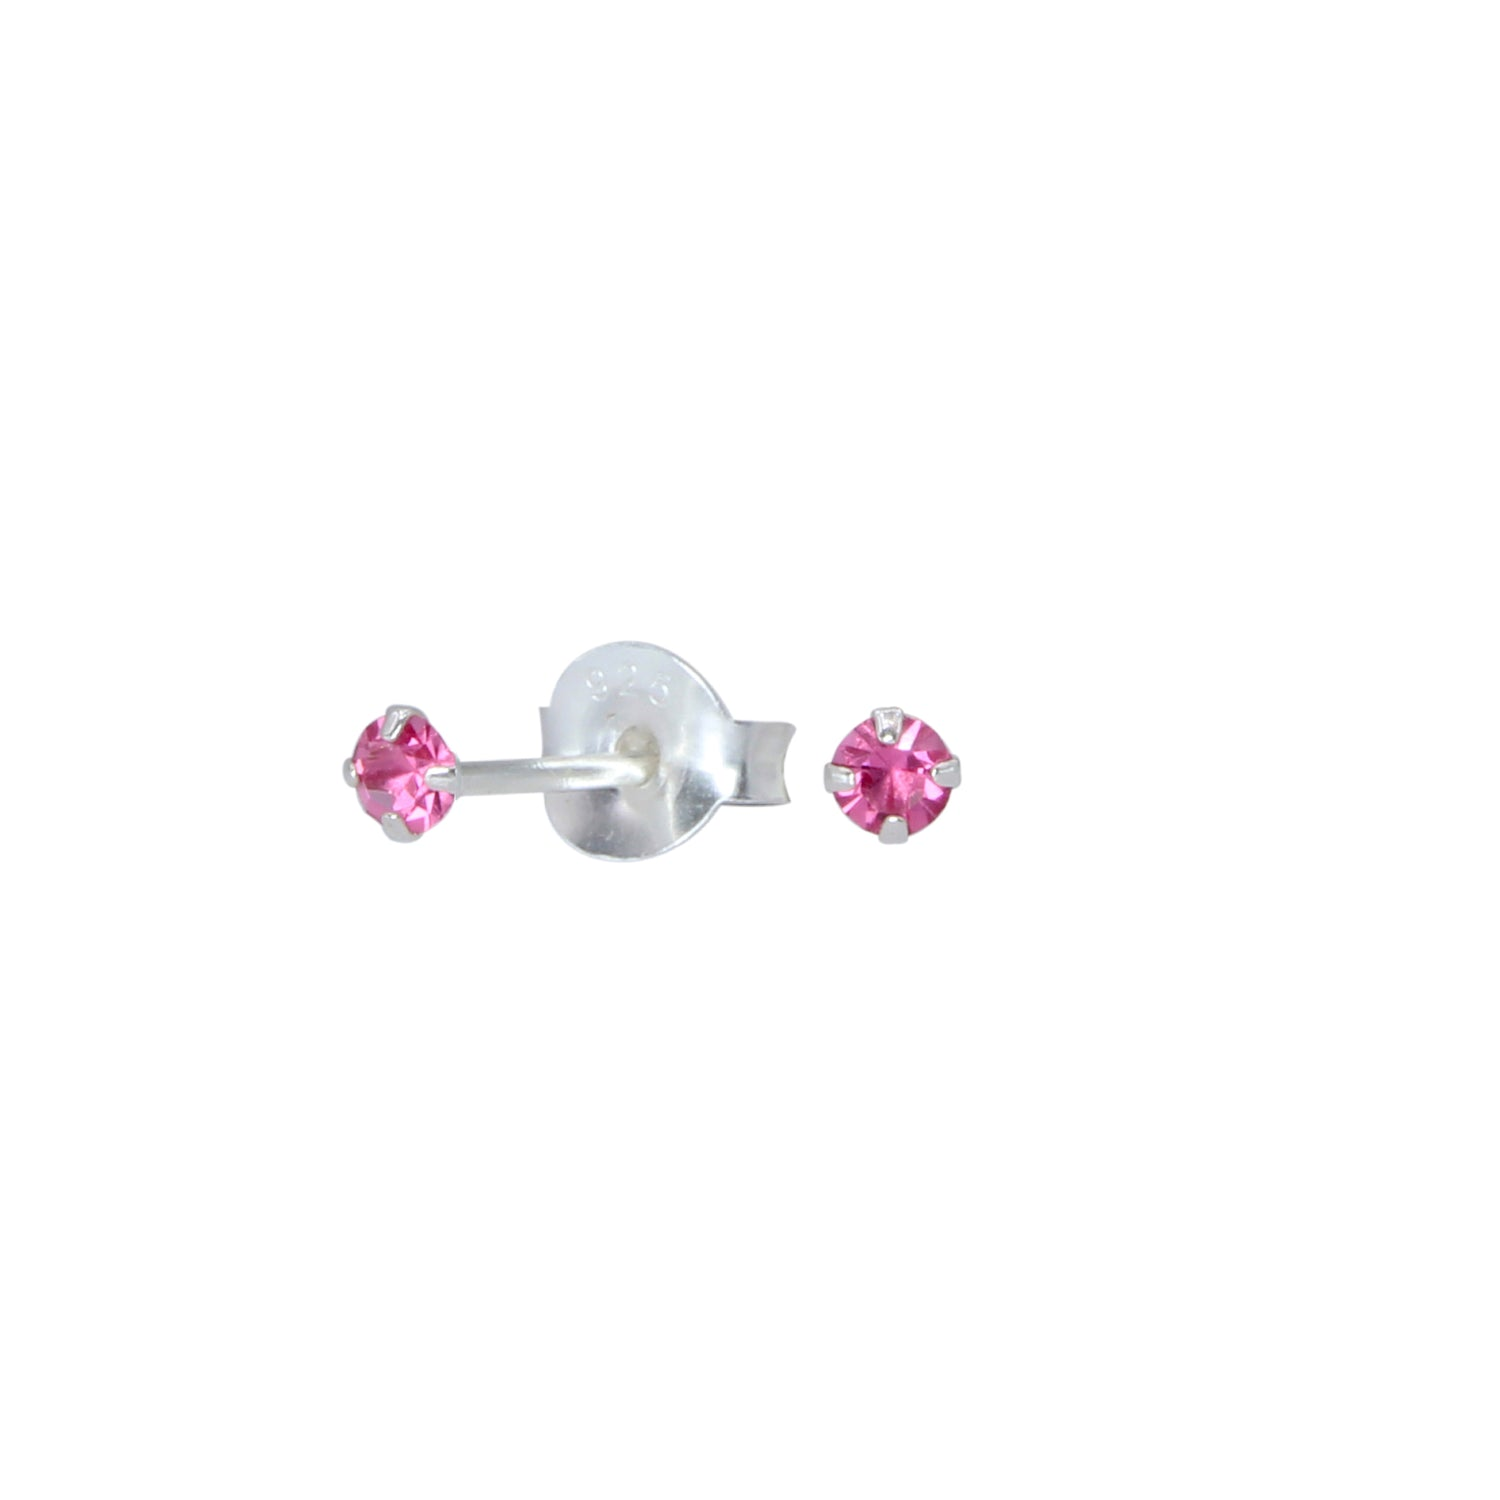 Little Birthstones Stud Earrings